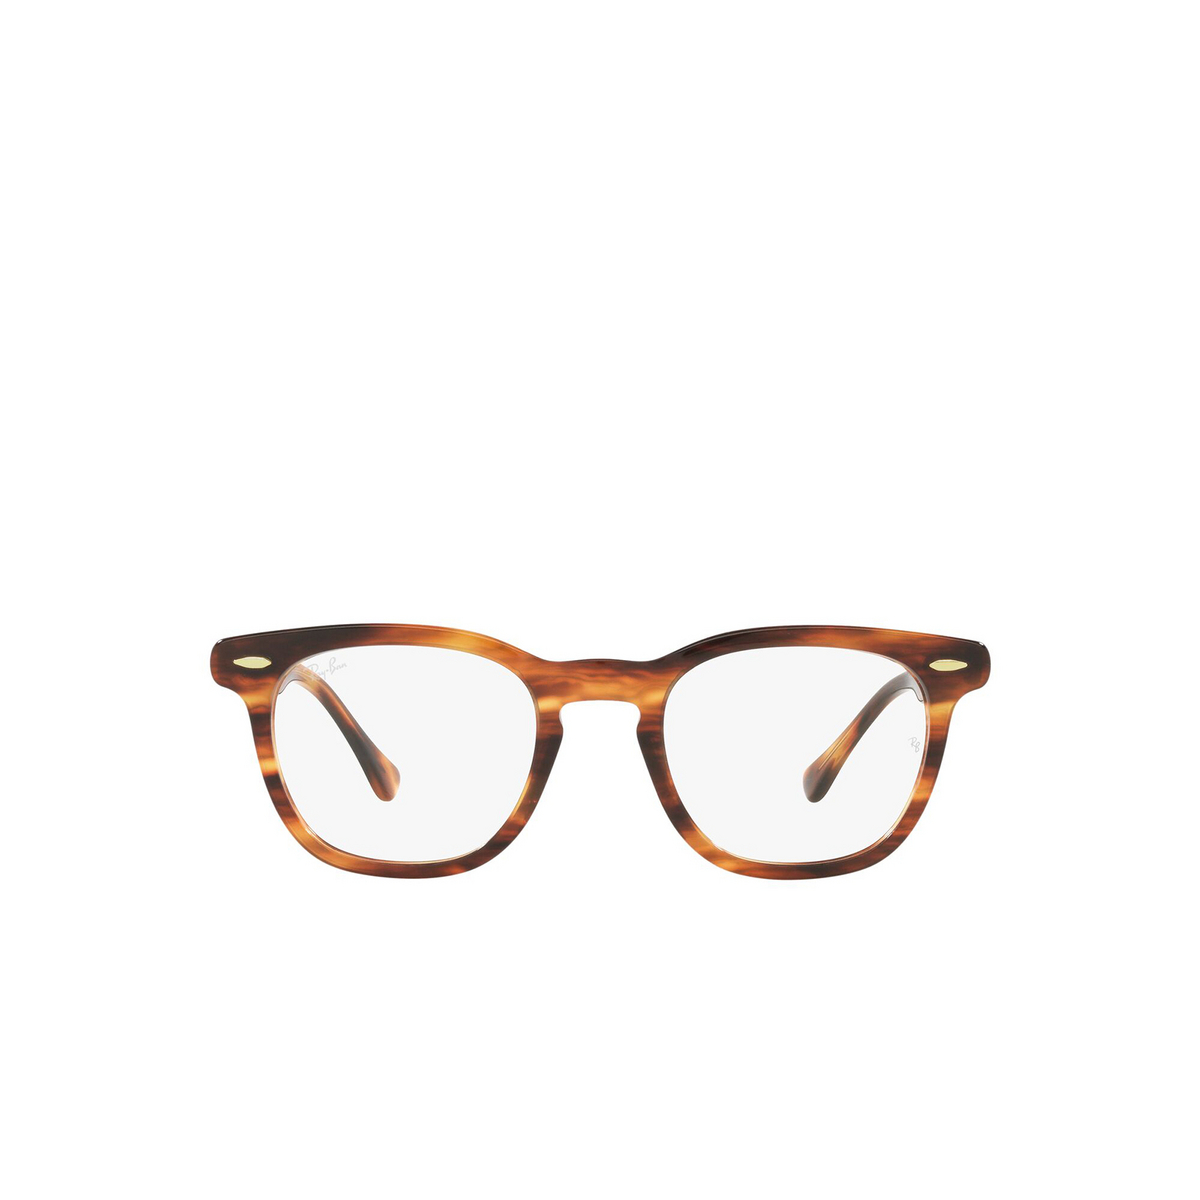 Ray-Ban® Square Eyeglasses: Hawkeye RX5398 color Striped Havana 2144 - front view.